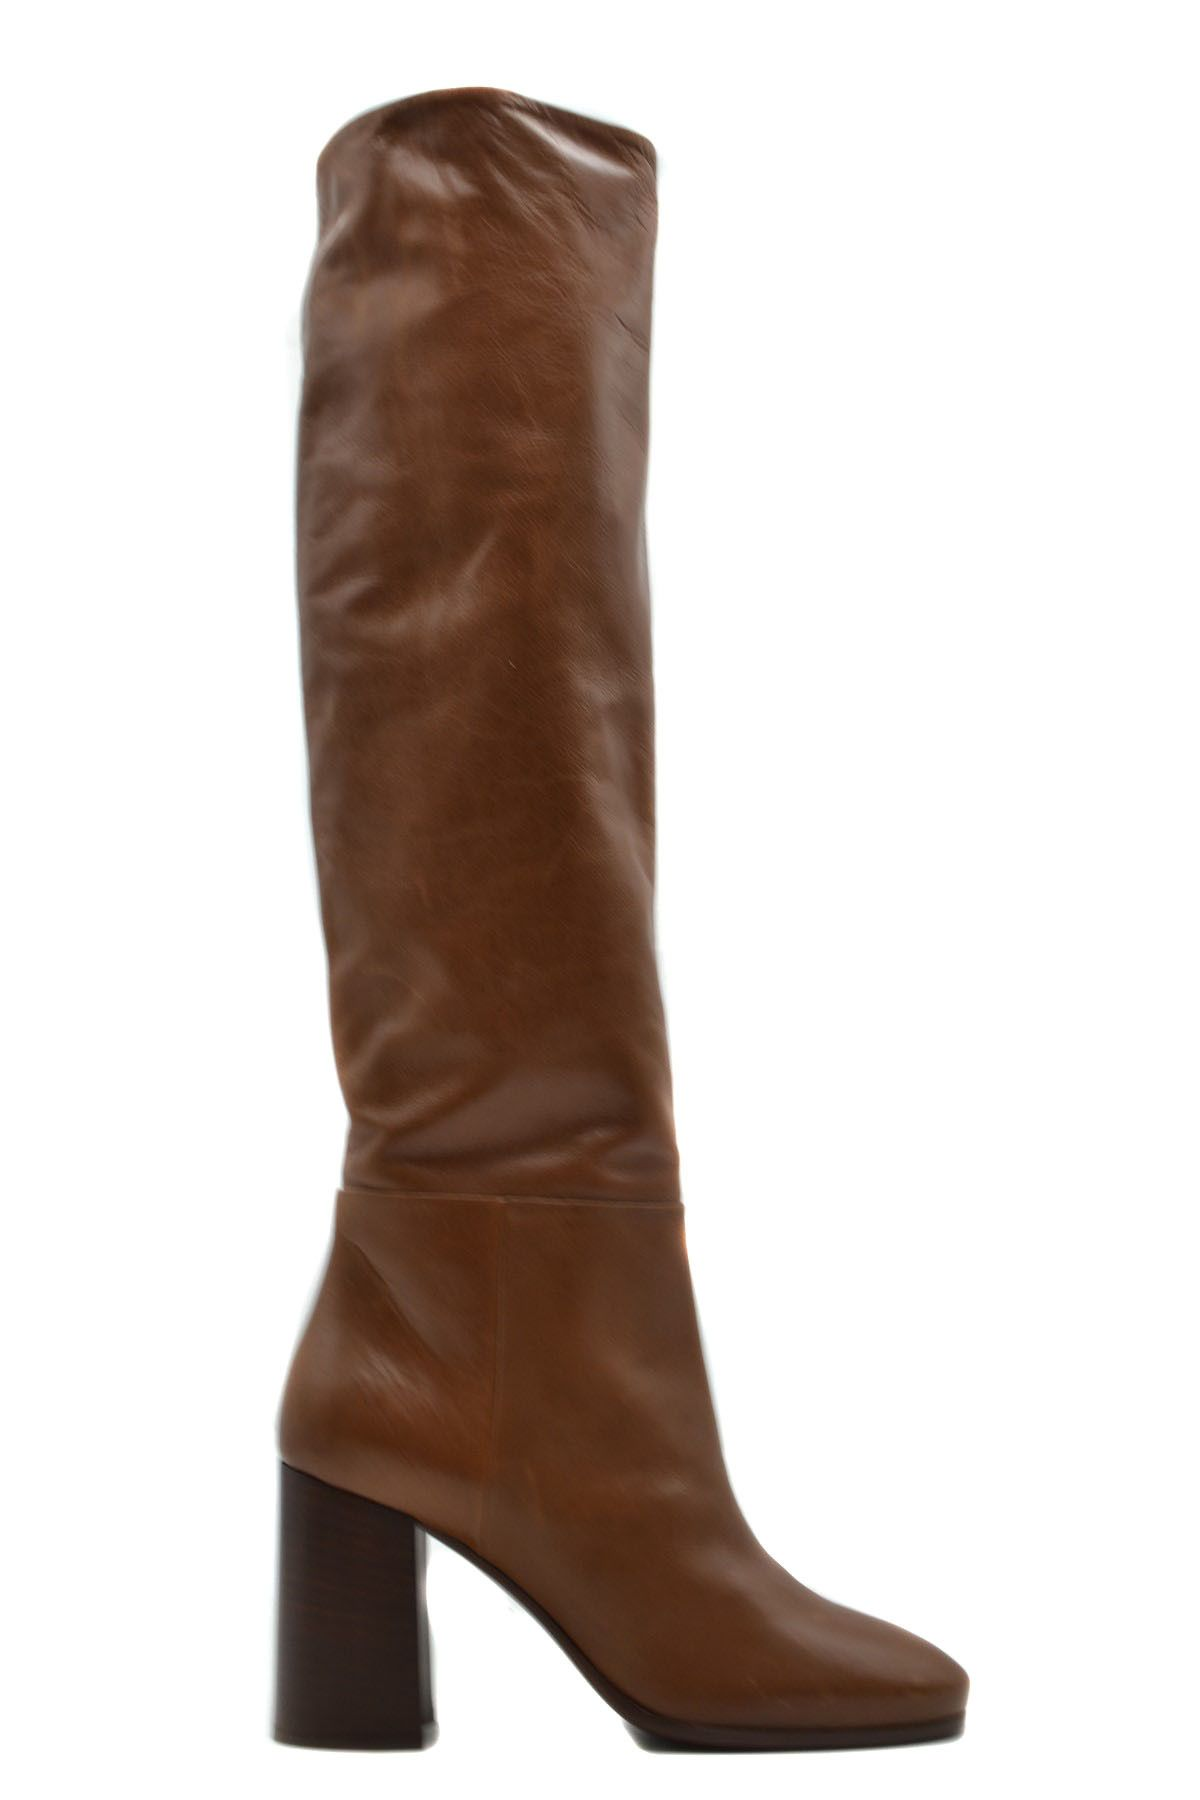 Miu Miu Women's Boots In Brown